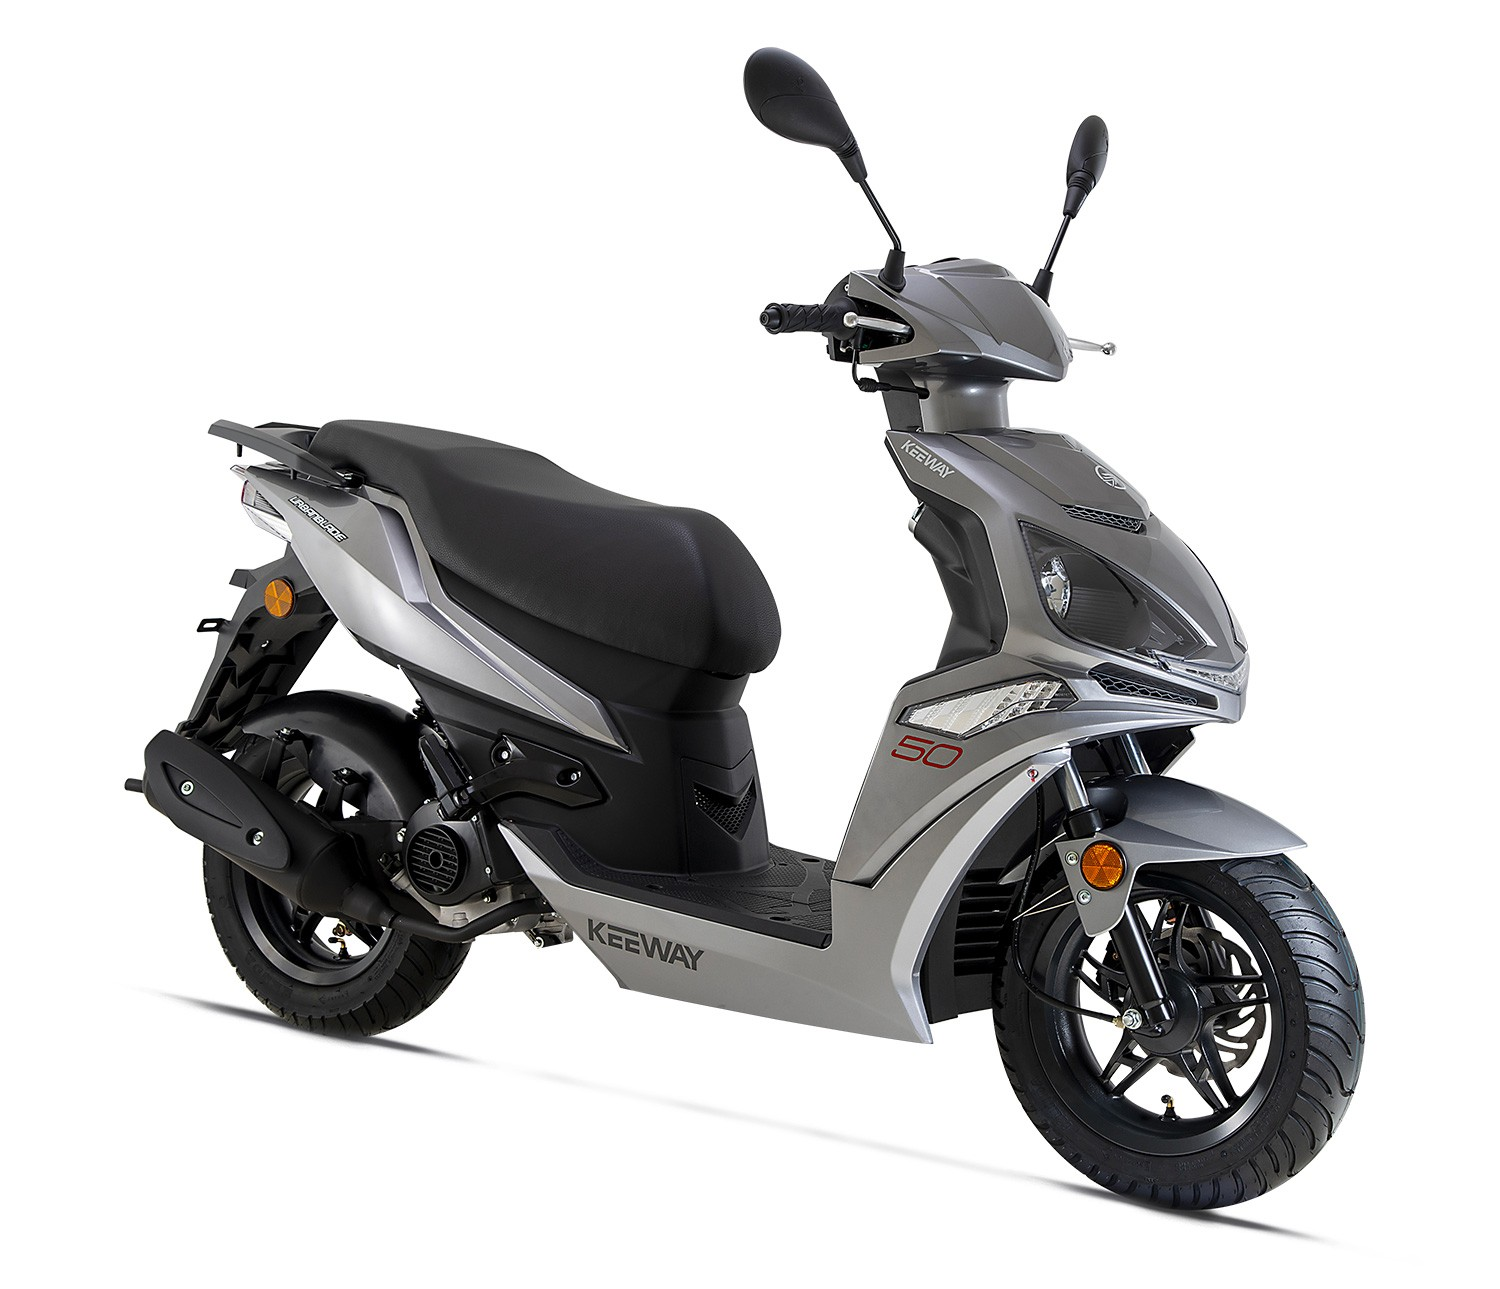 Scooter 4T KEEWAY